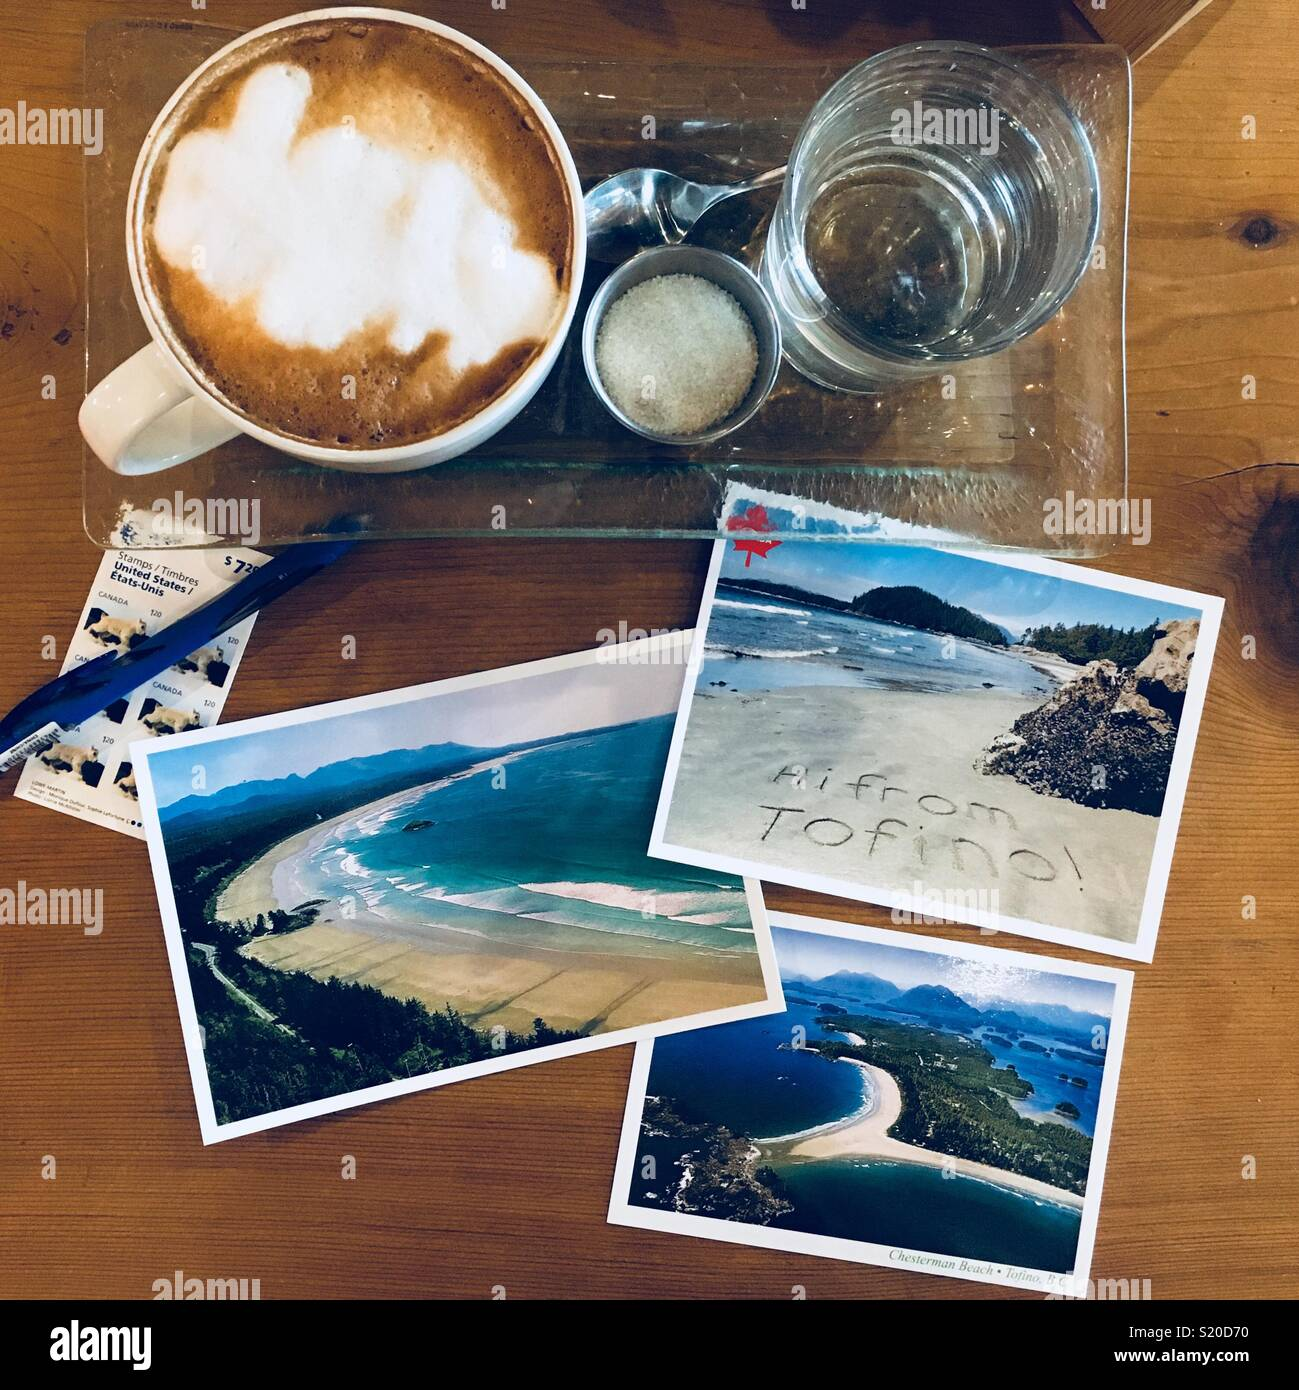 Postcards and coffee - Stock Image